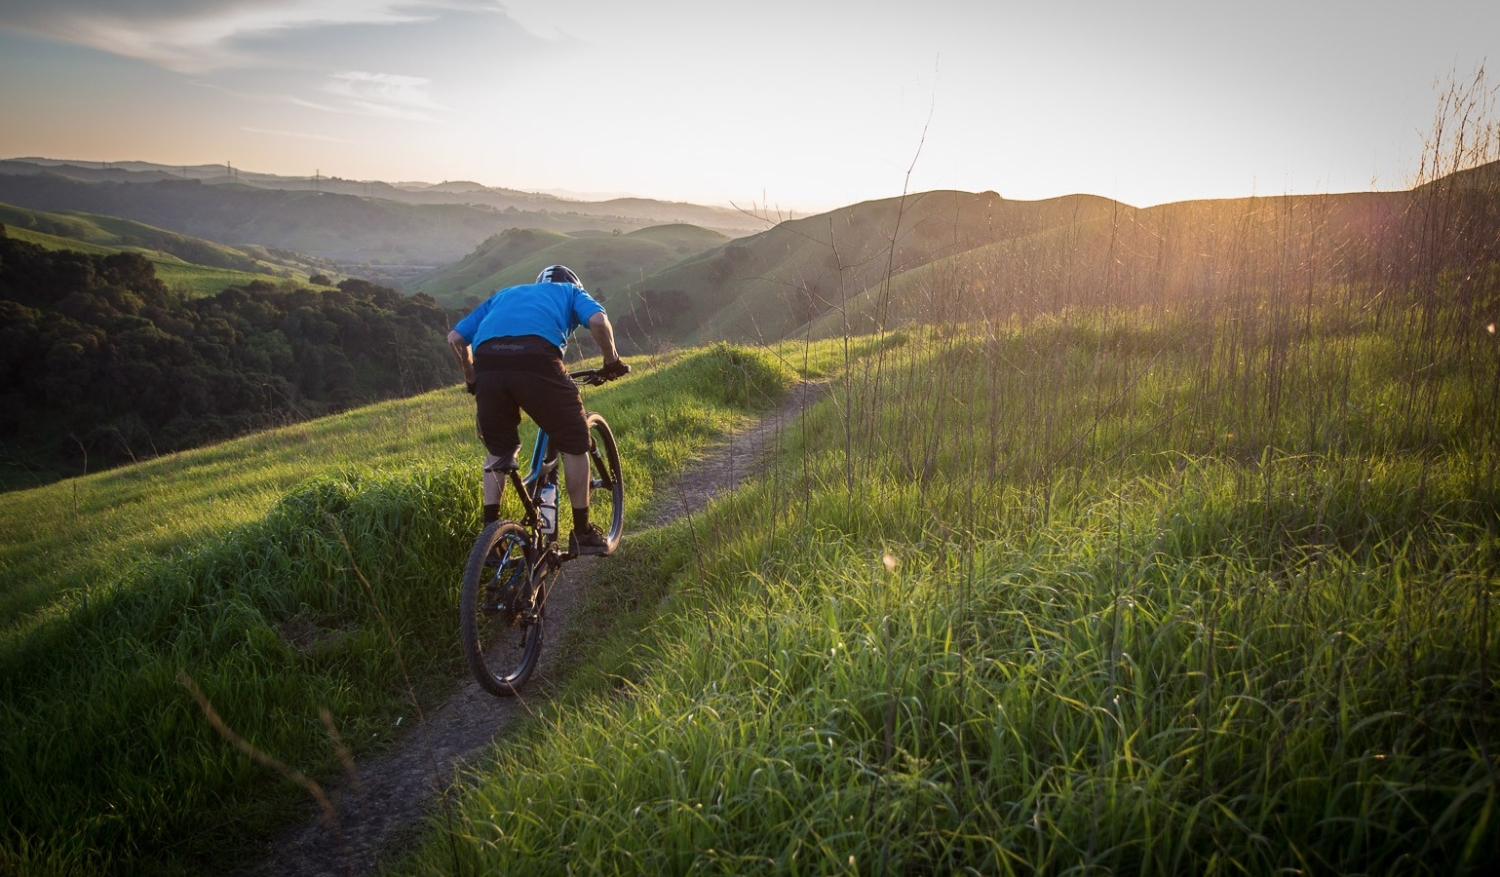 Mountain Biking at Crockett Hills Regional Park